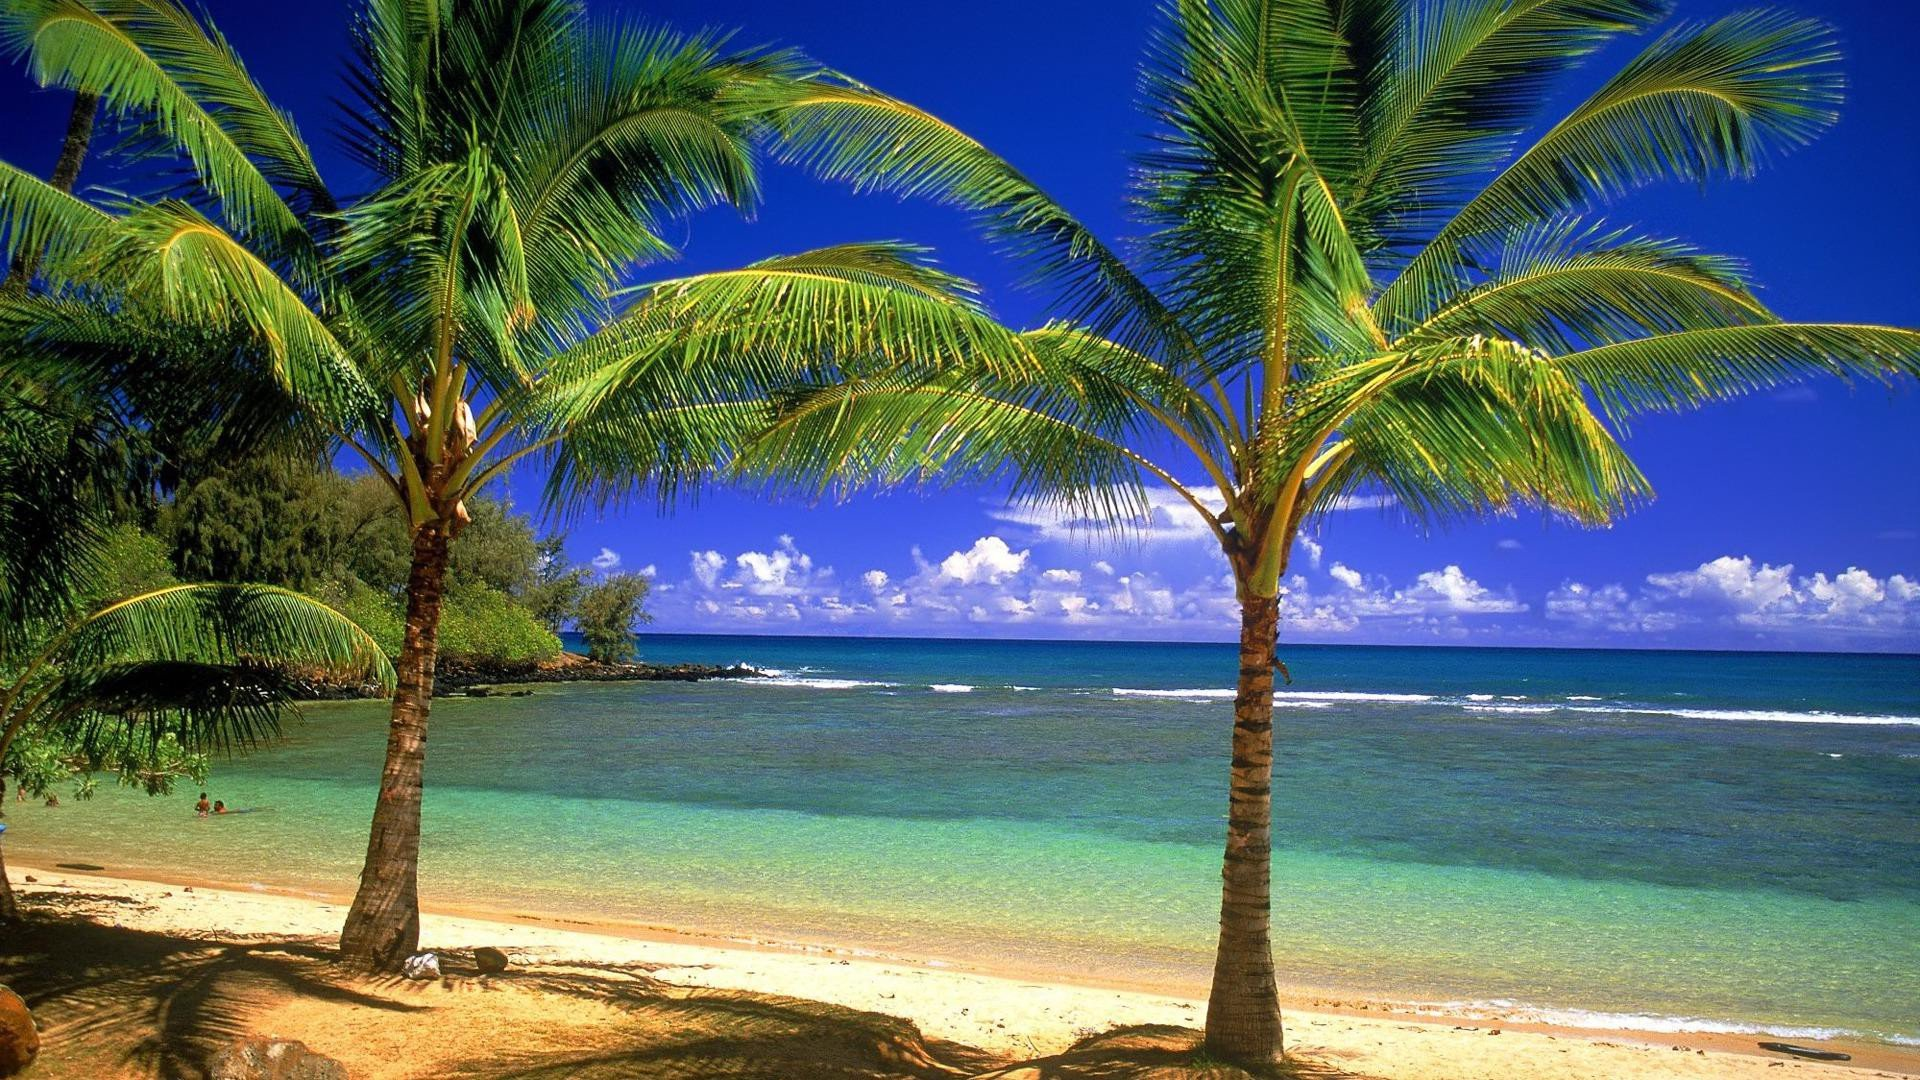 beach wallpapers beach hd wallpapers beach hd wallpapers beach hd 1920x1080